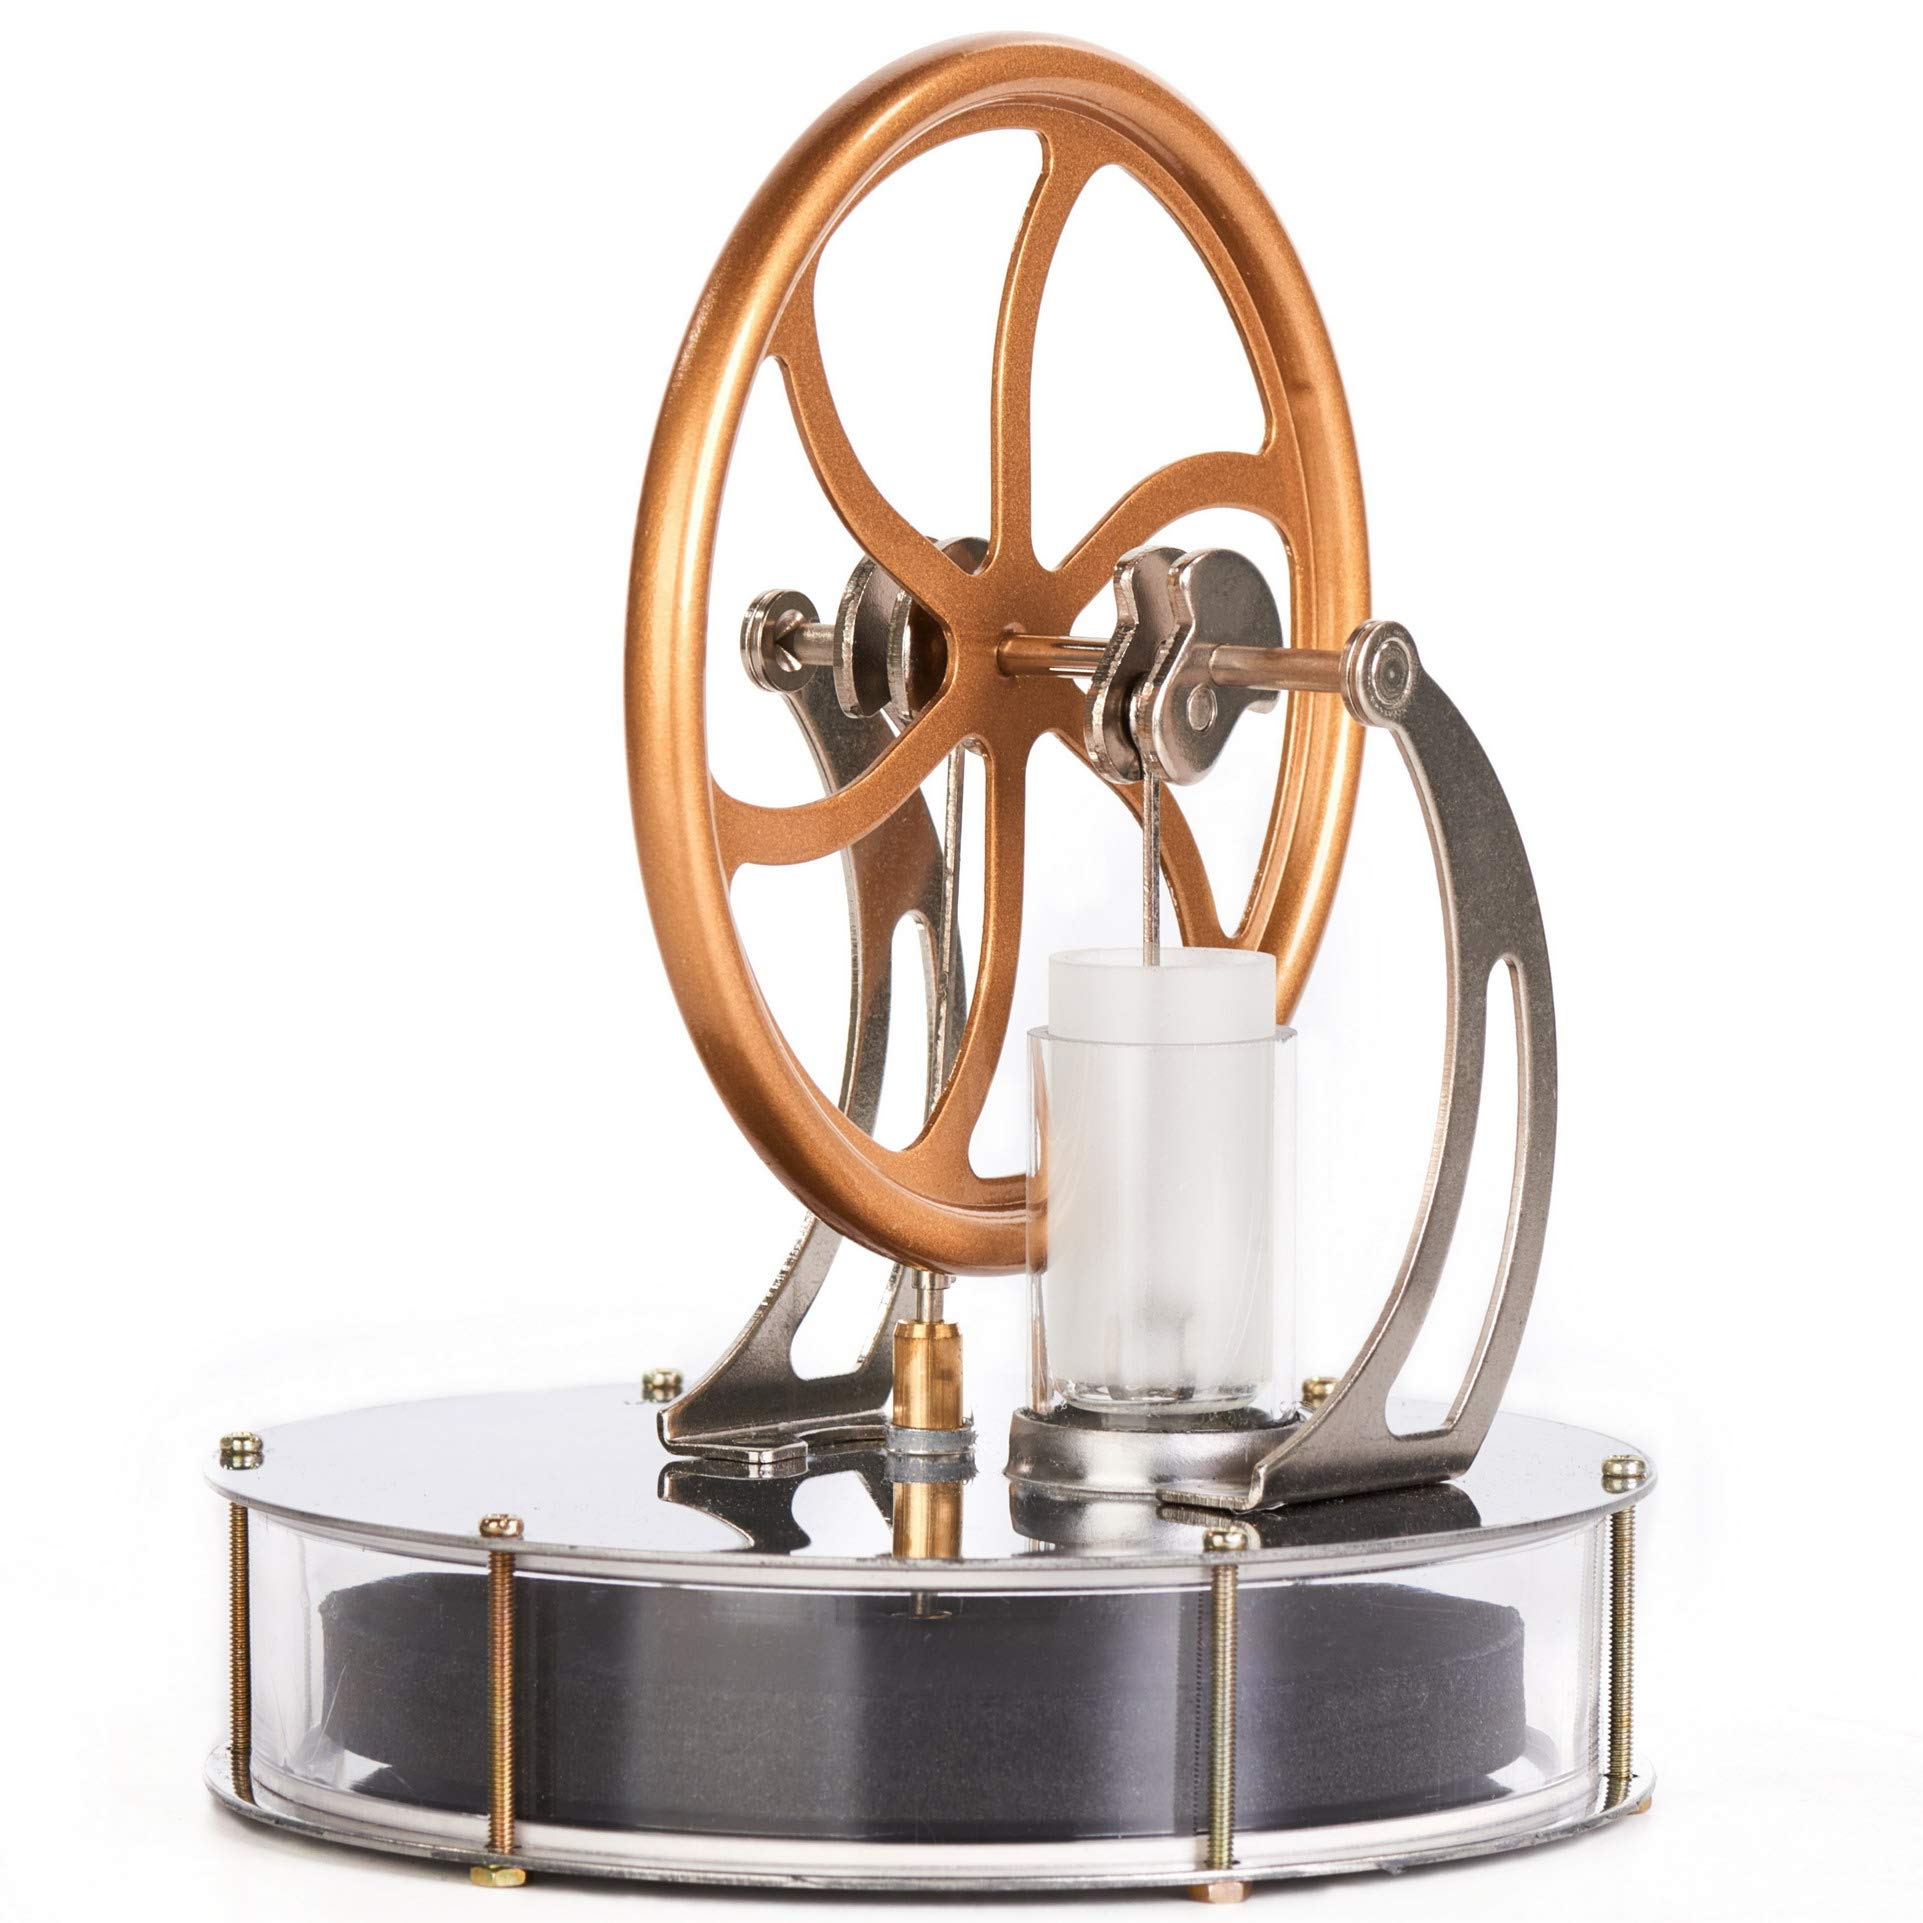 Sunnytech Low Temperature Stirling Engine Motor Steam Heat Education Model Toy Kit (LT001) by Sunnytech (Image #4)